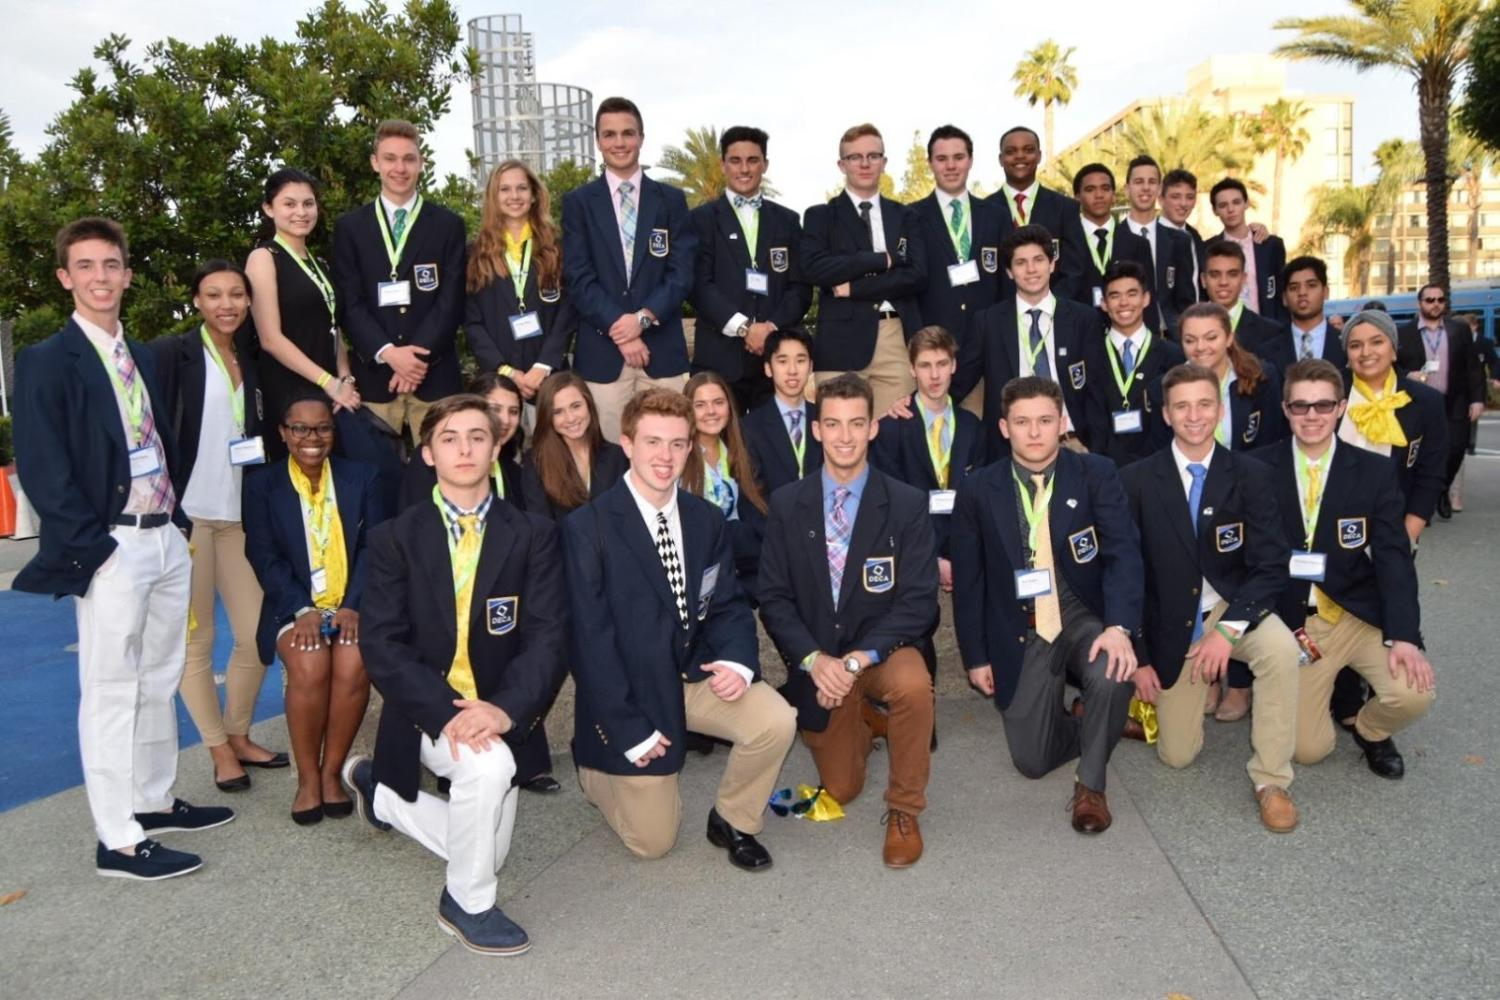 West+Bloomfield+High+School+DECA+Chapter+Earns+Highest+Honors+at+DECA+International+Career+Development+Conference